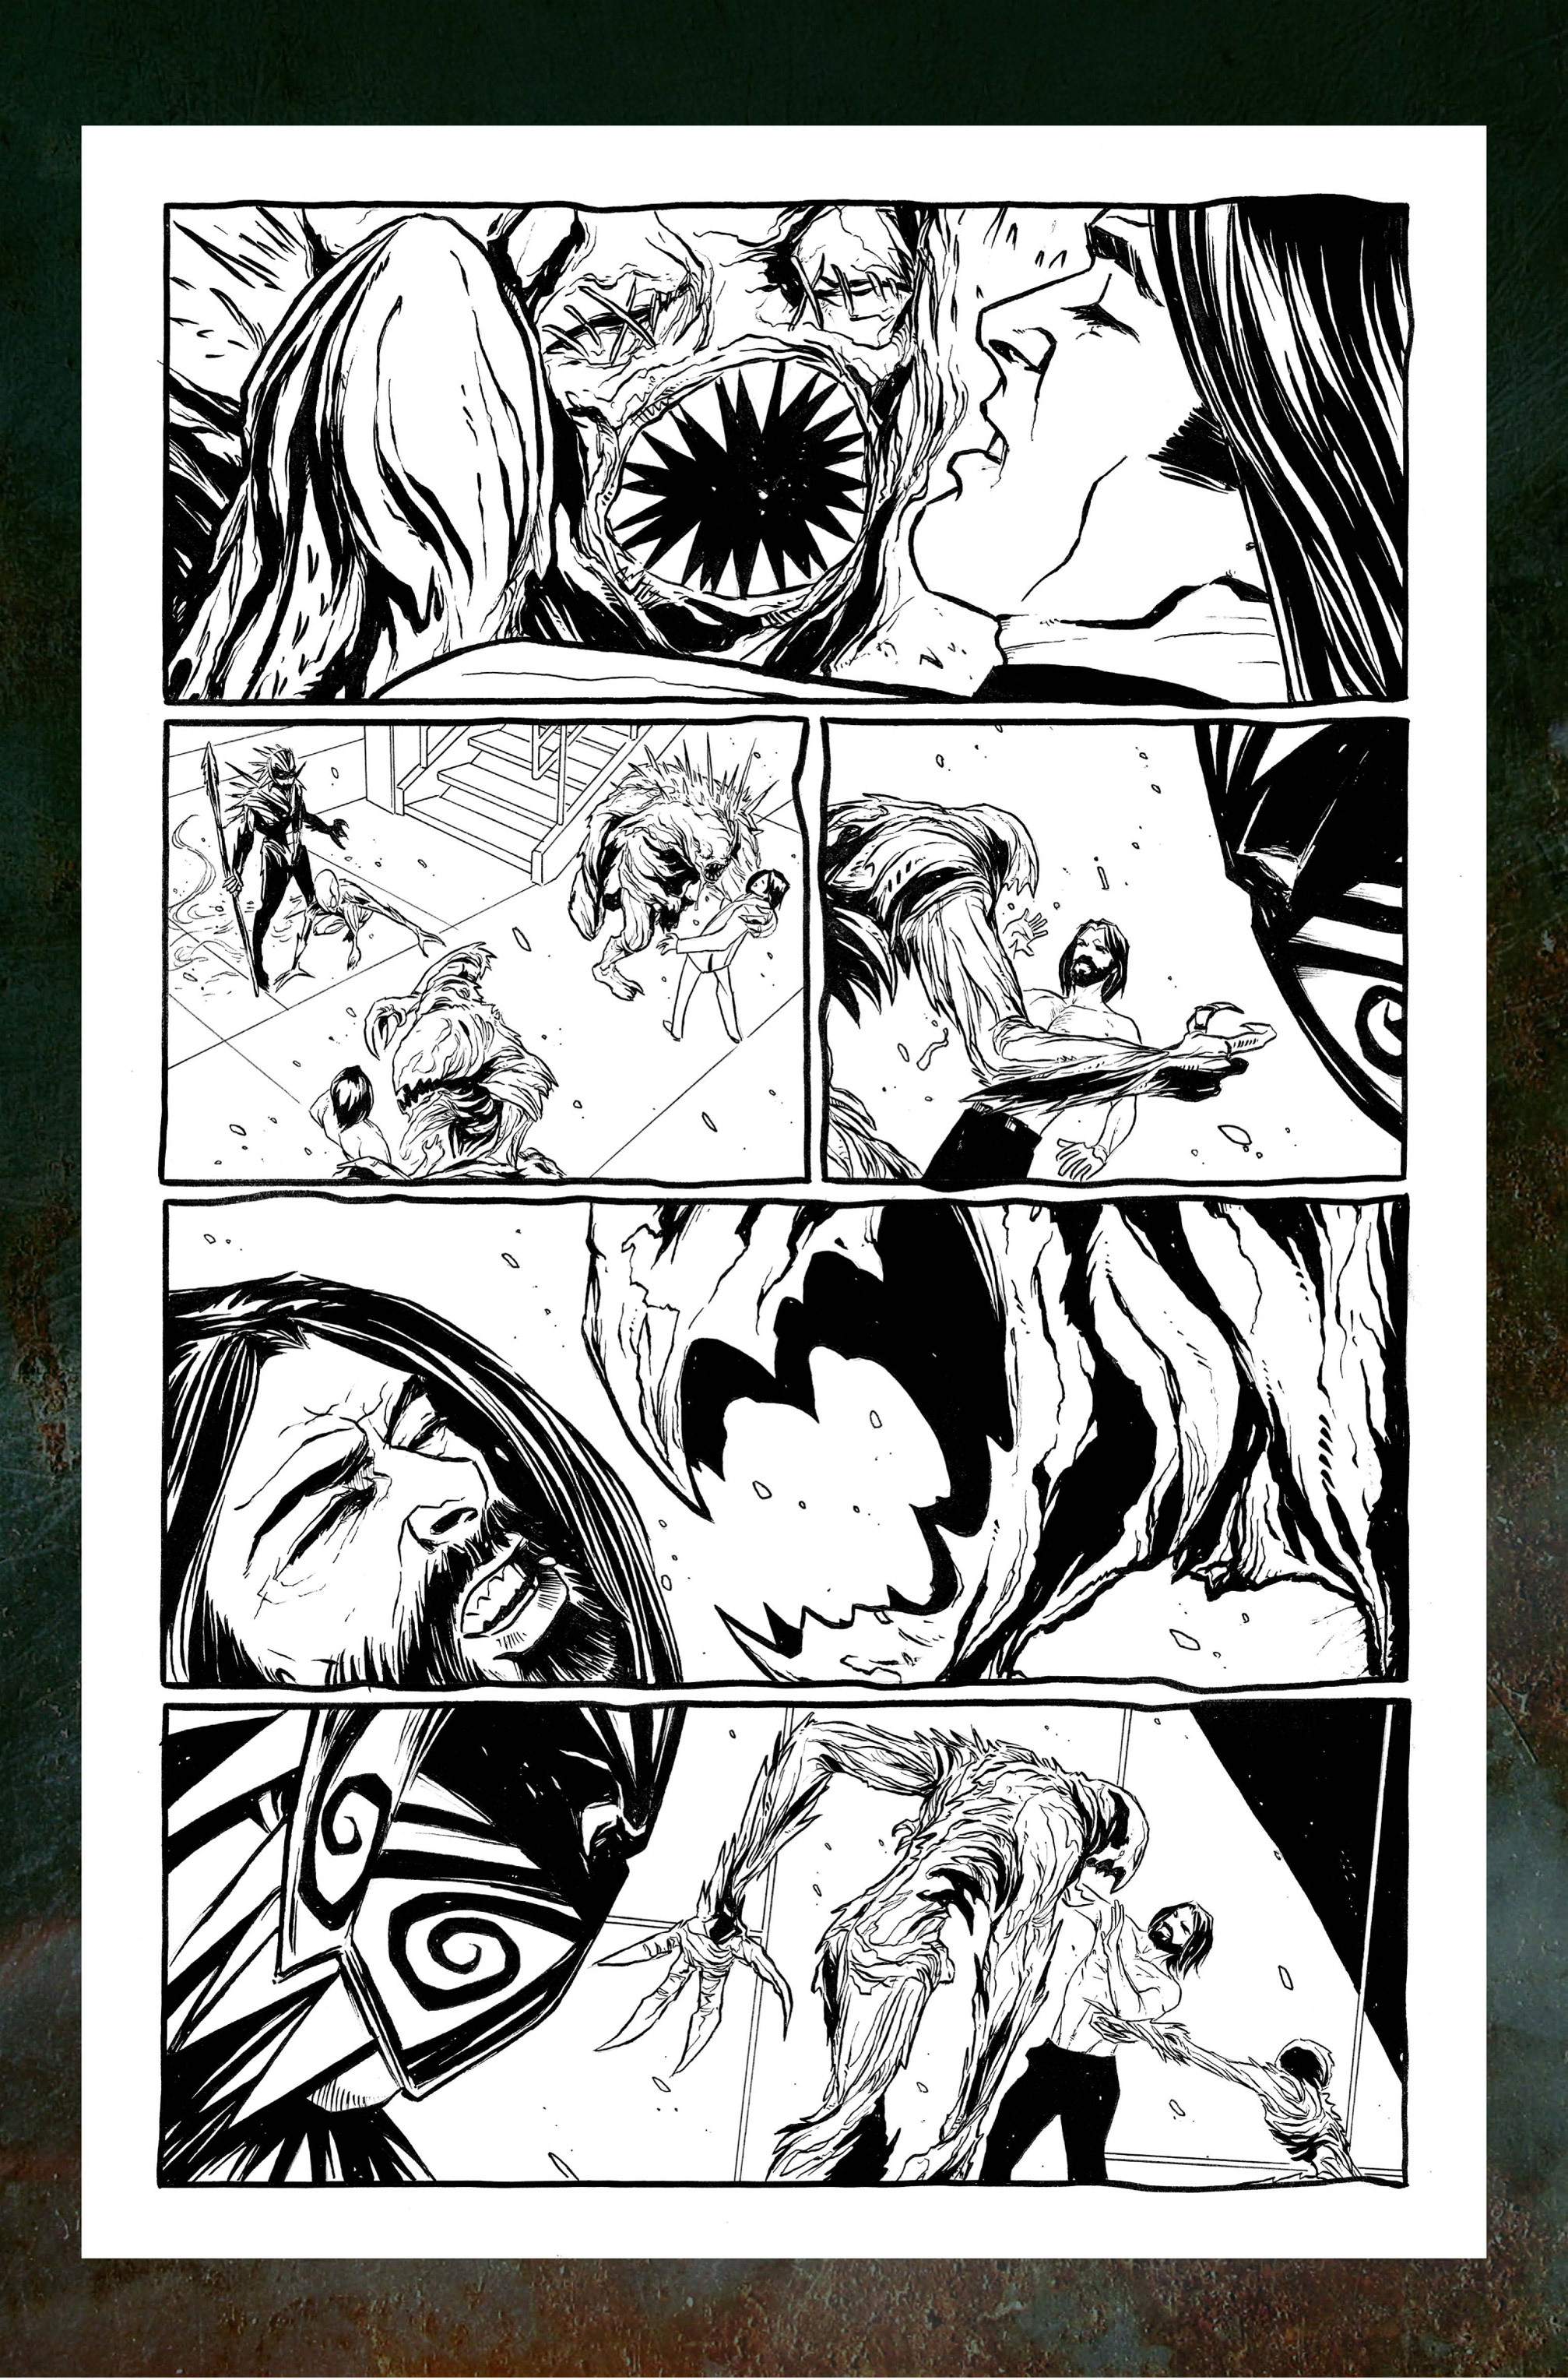 The Darkness (2007) chap 115 pic 35